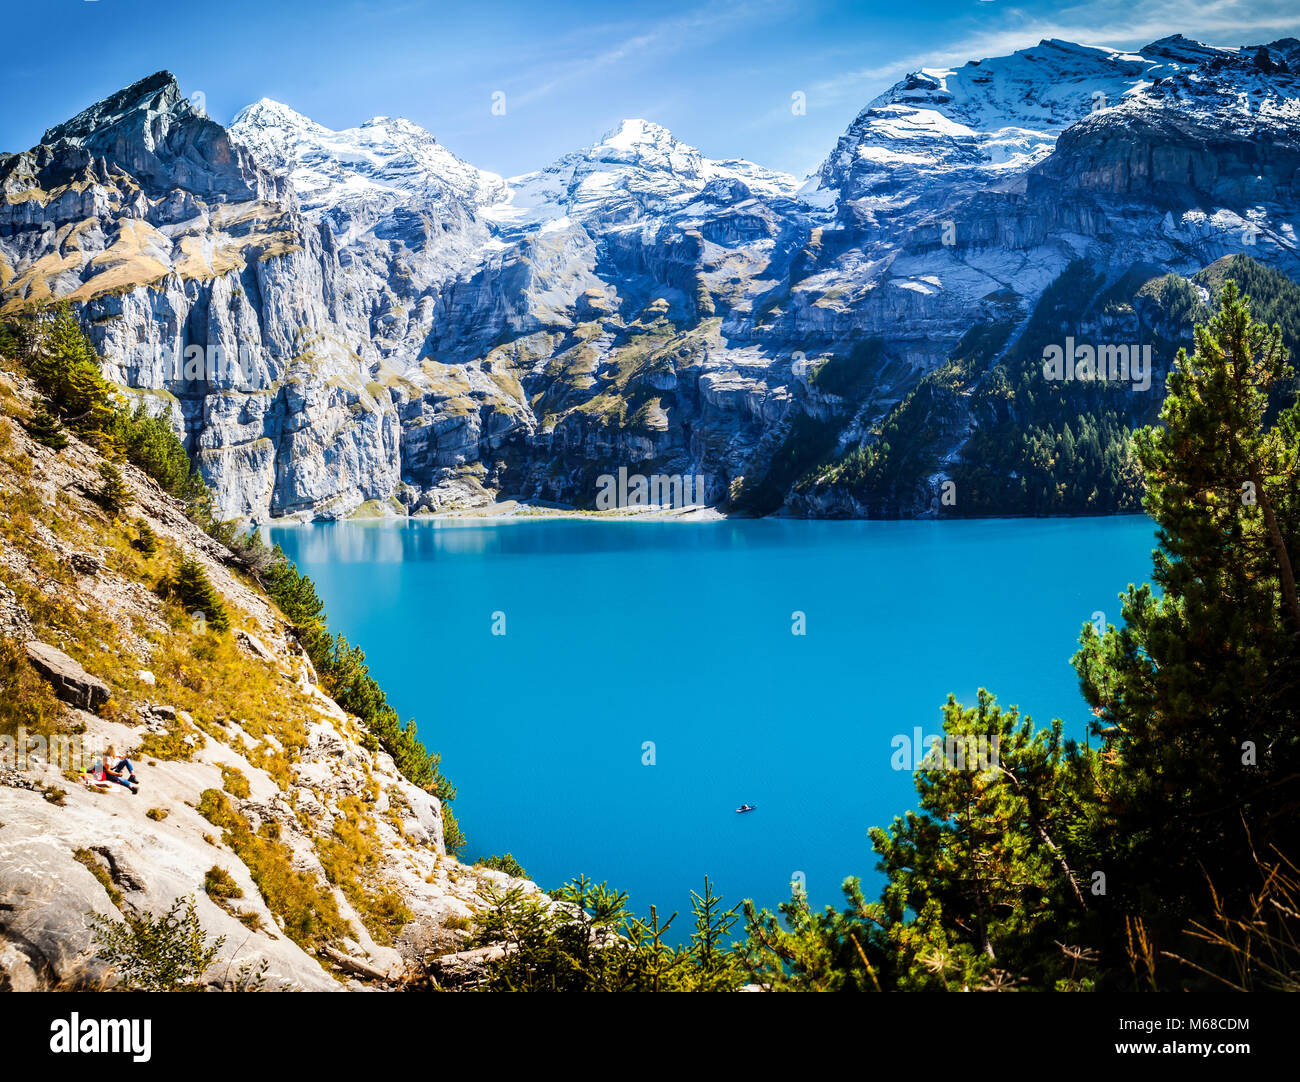 scenic view of famous mountain lake oeschinensee in switzerland kandersteg late summer in the alps with snow covered - Stock Image